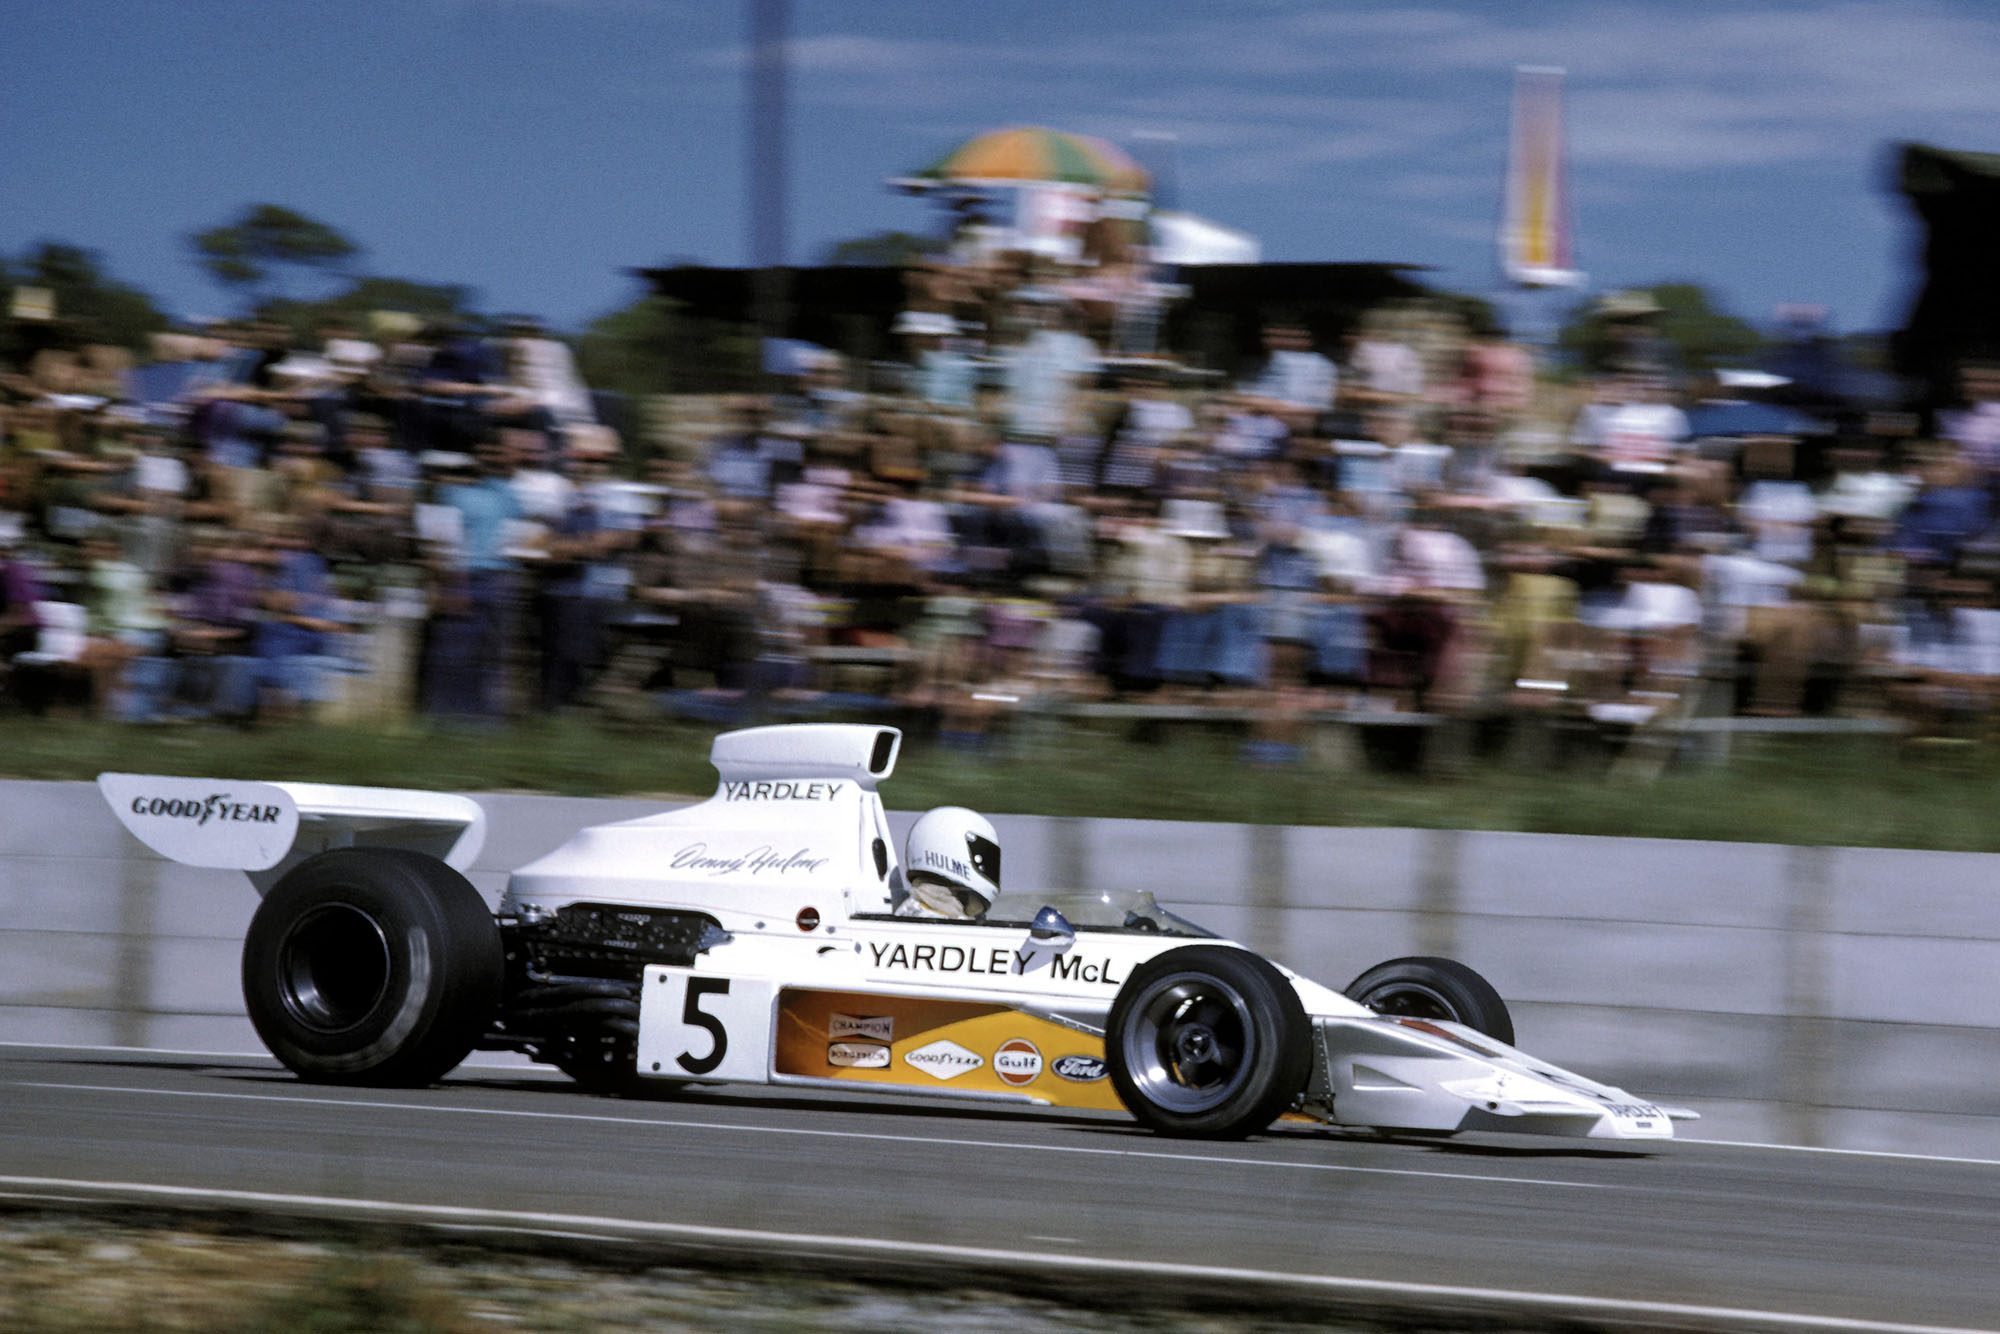 Denny Hulme (McLaren) driving at the 1973 South African Grand Prix, Kyalami.